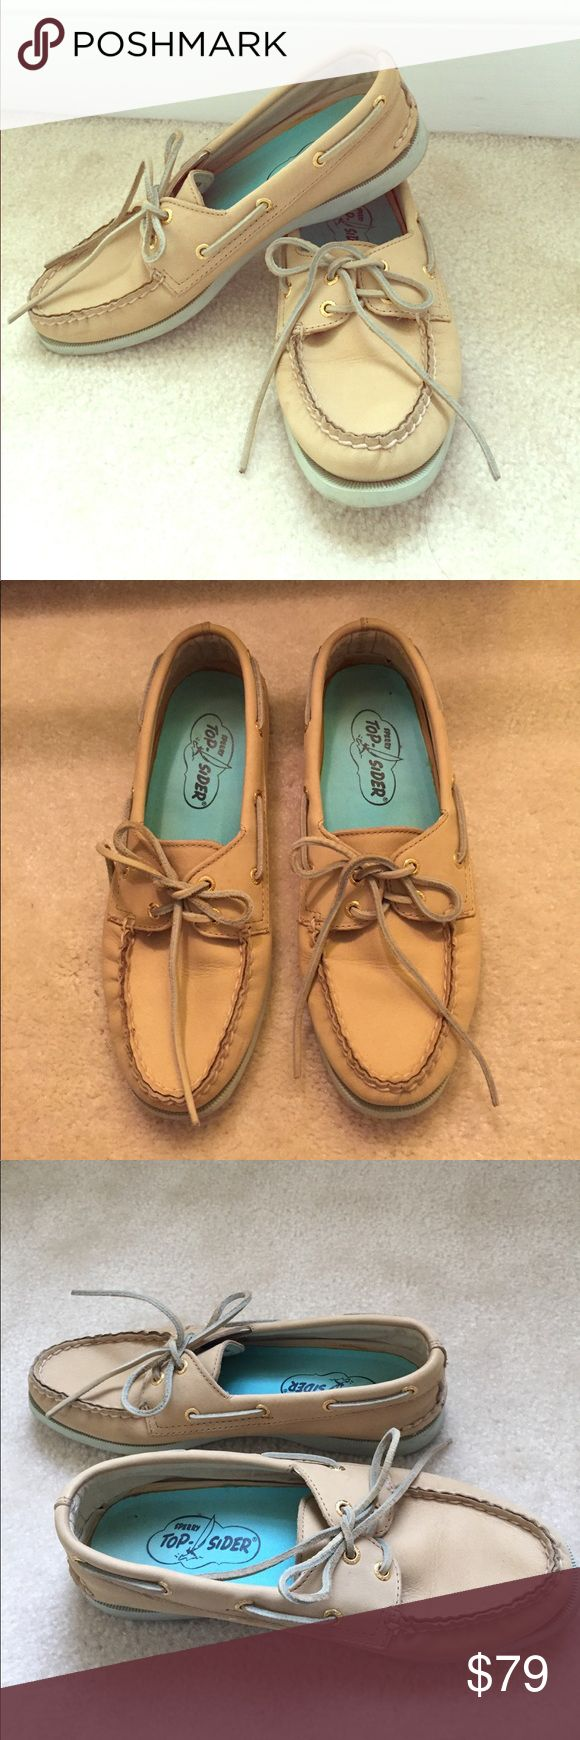 Sperry Top-Sider Authentic Original Boat Shoes Sperry Top-Sider Authentic Original women's Boat Shoes (color: Sand & light blue) Sperry Top-Sider Shoes Flats & Loafers